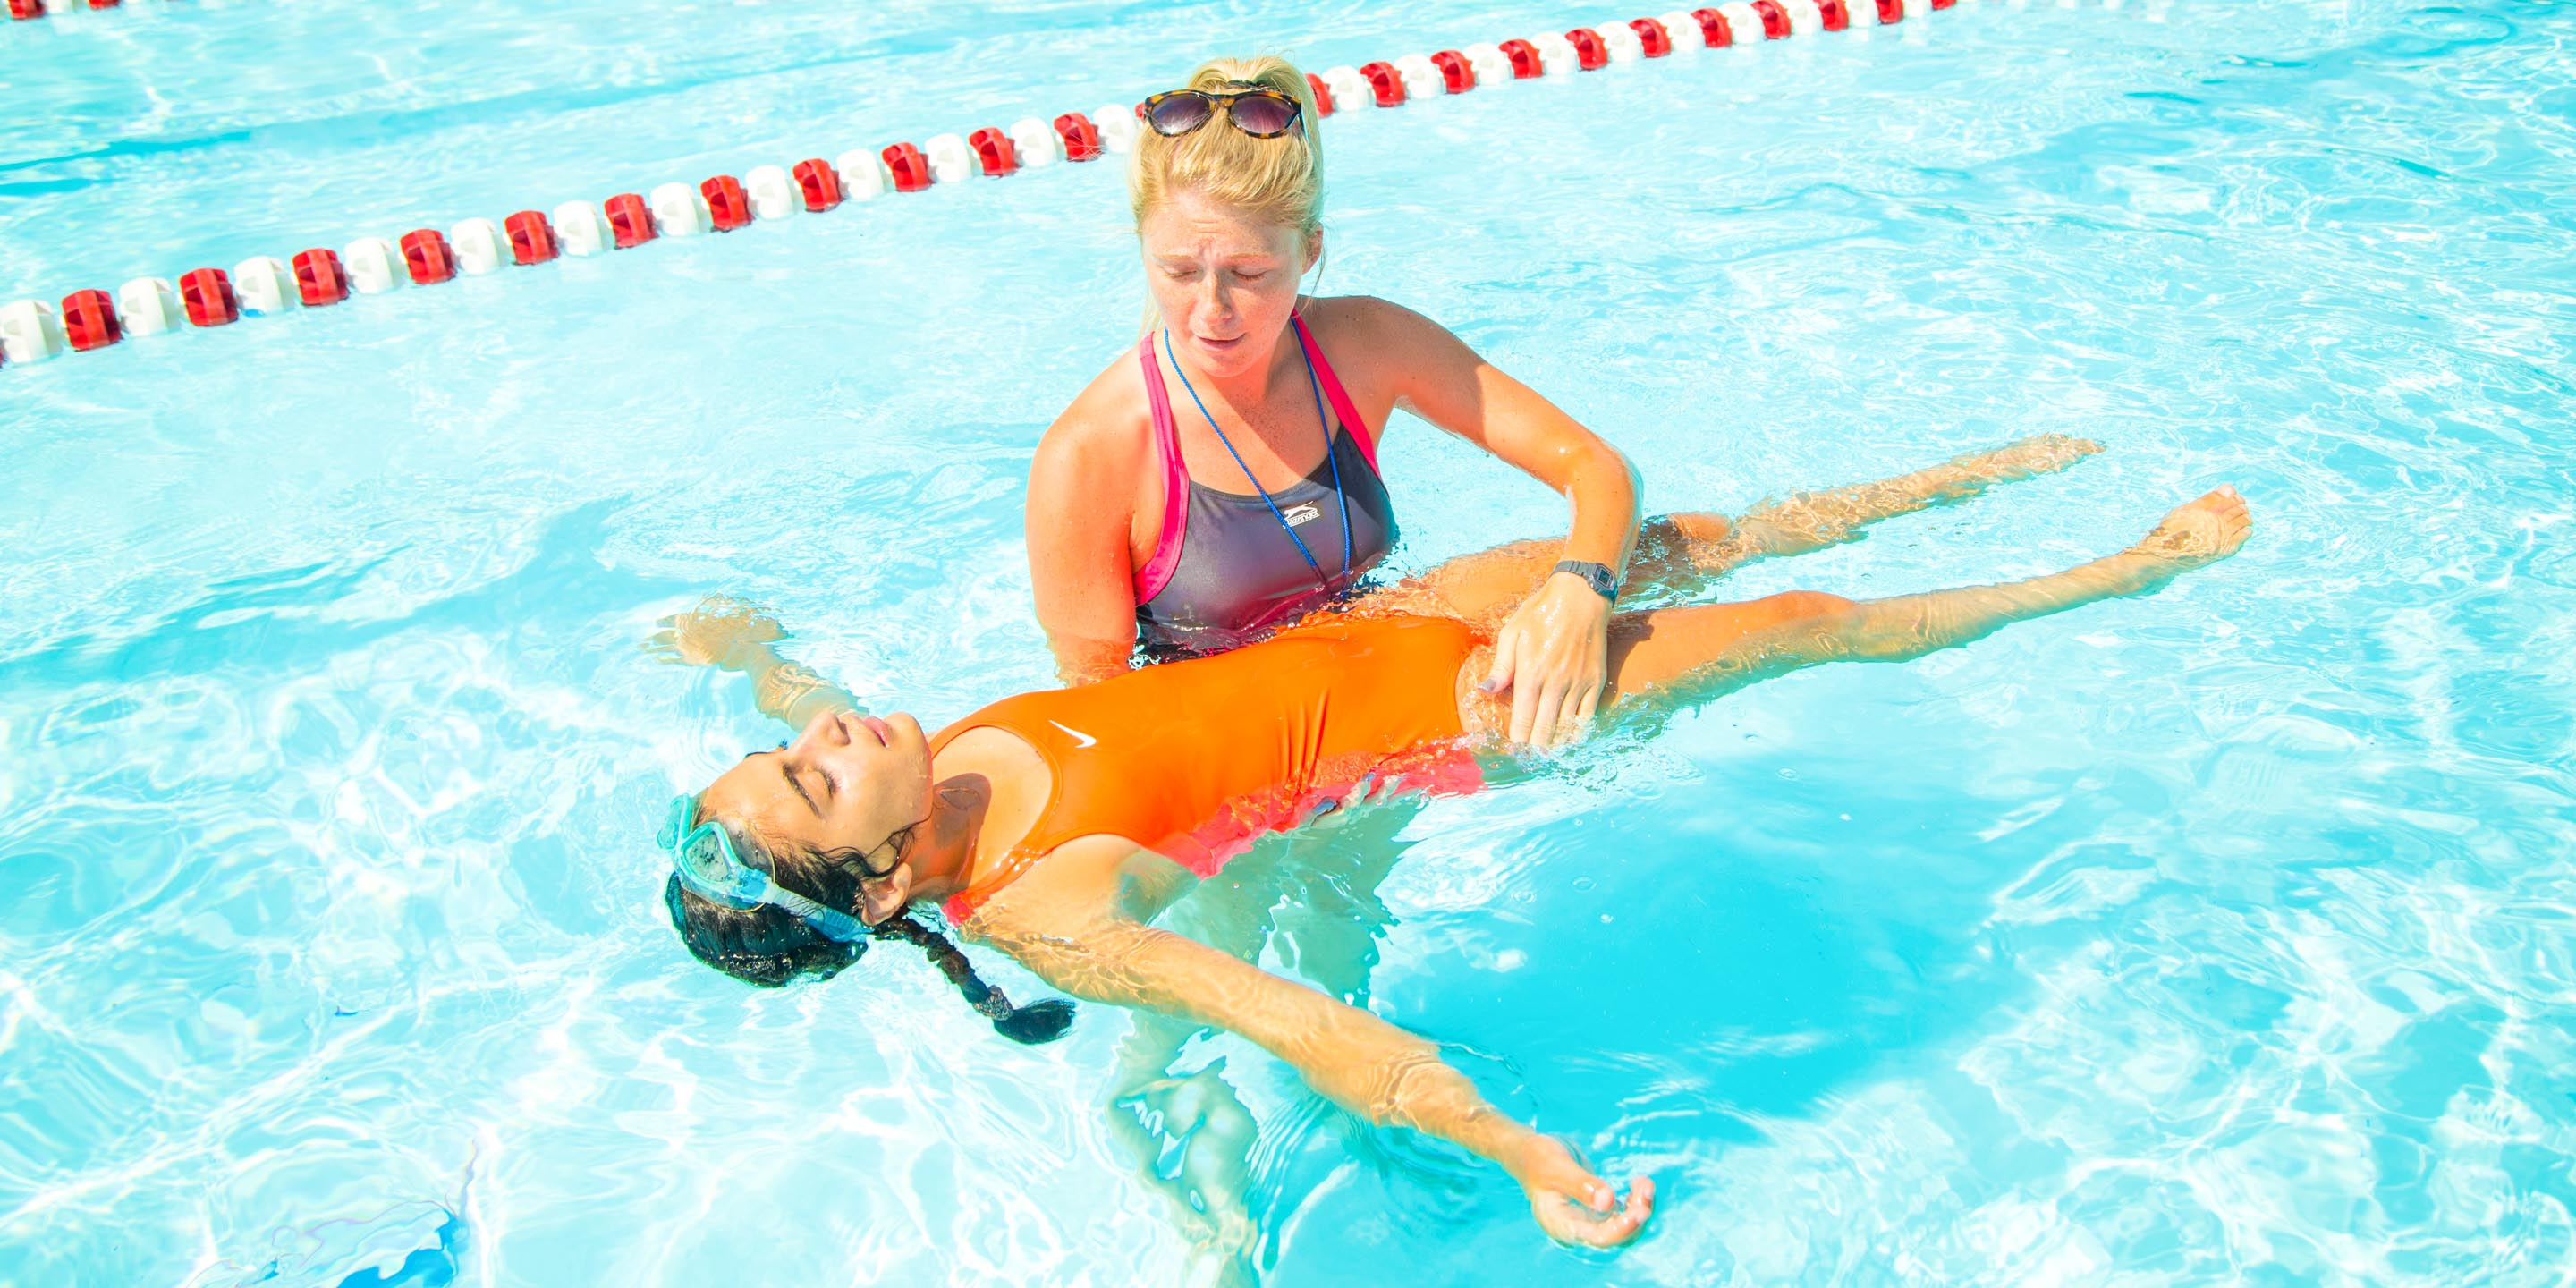 Activity counselor helps camper float on back in water